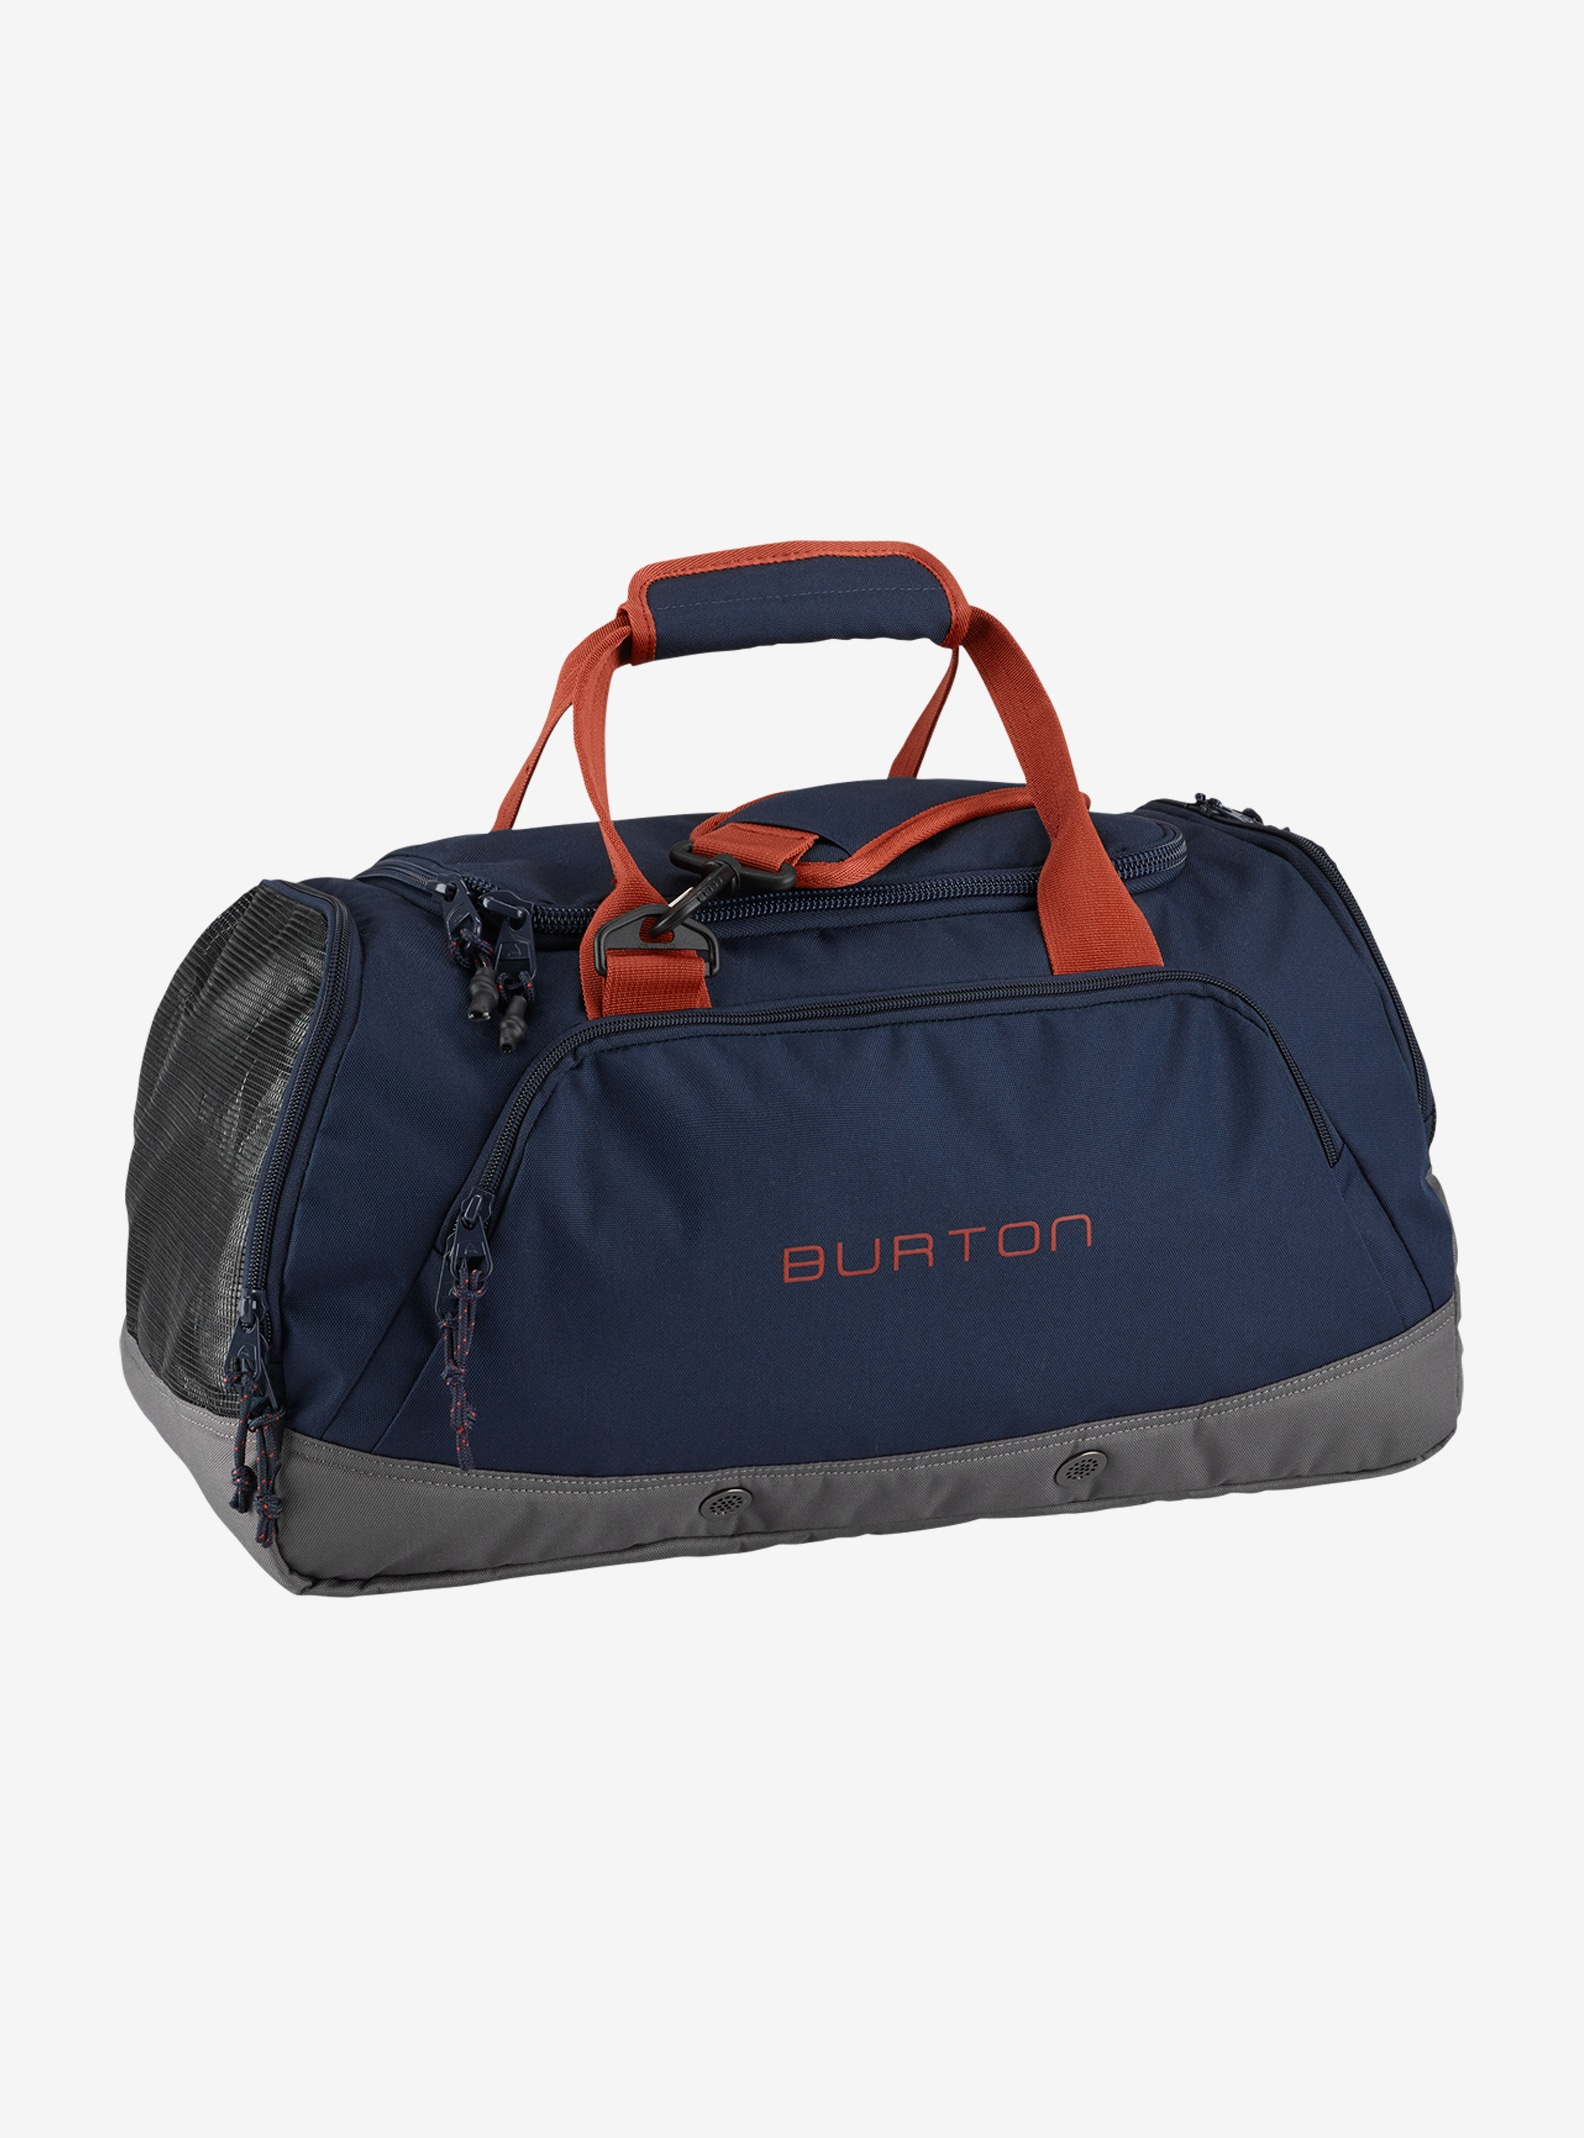 Burton Boothaus Bag 2.0 Medium shown in Eclipse